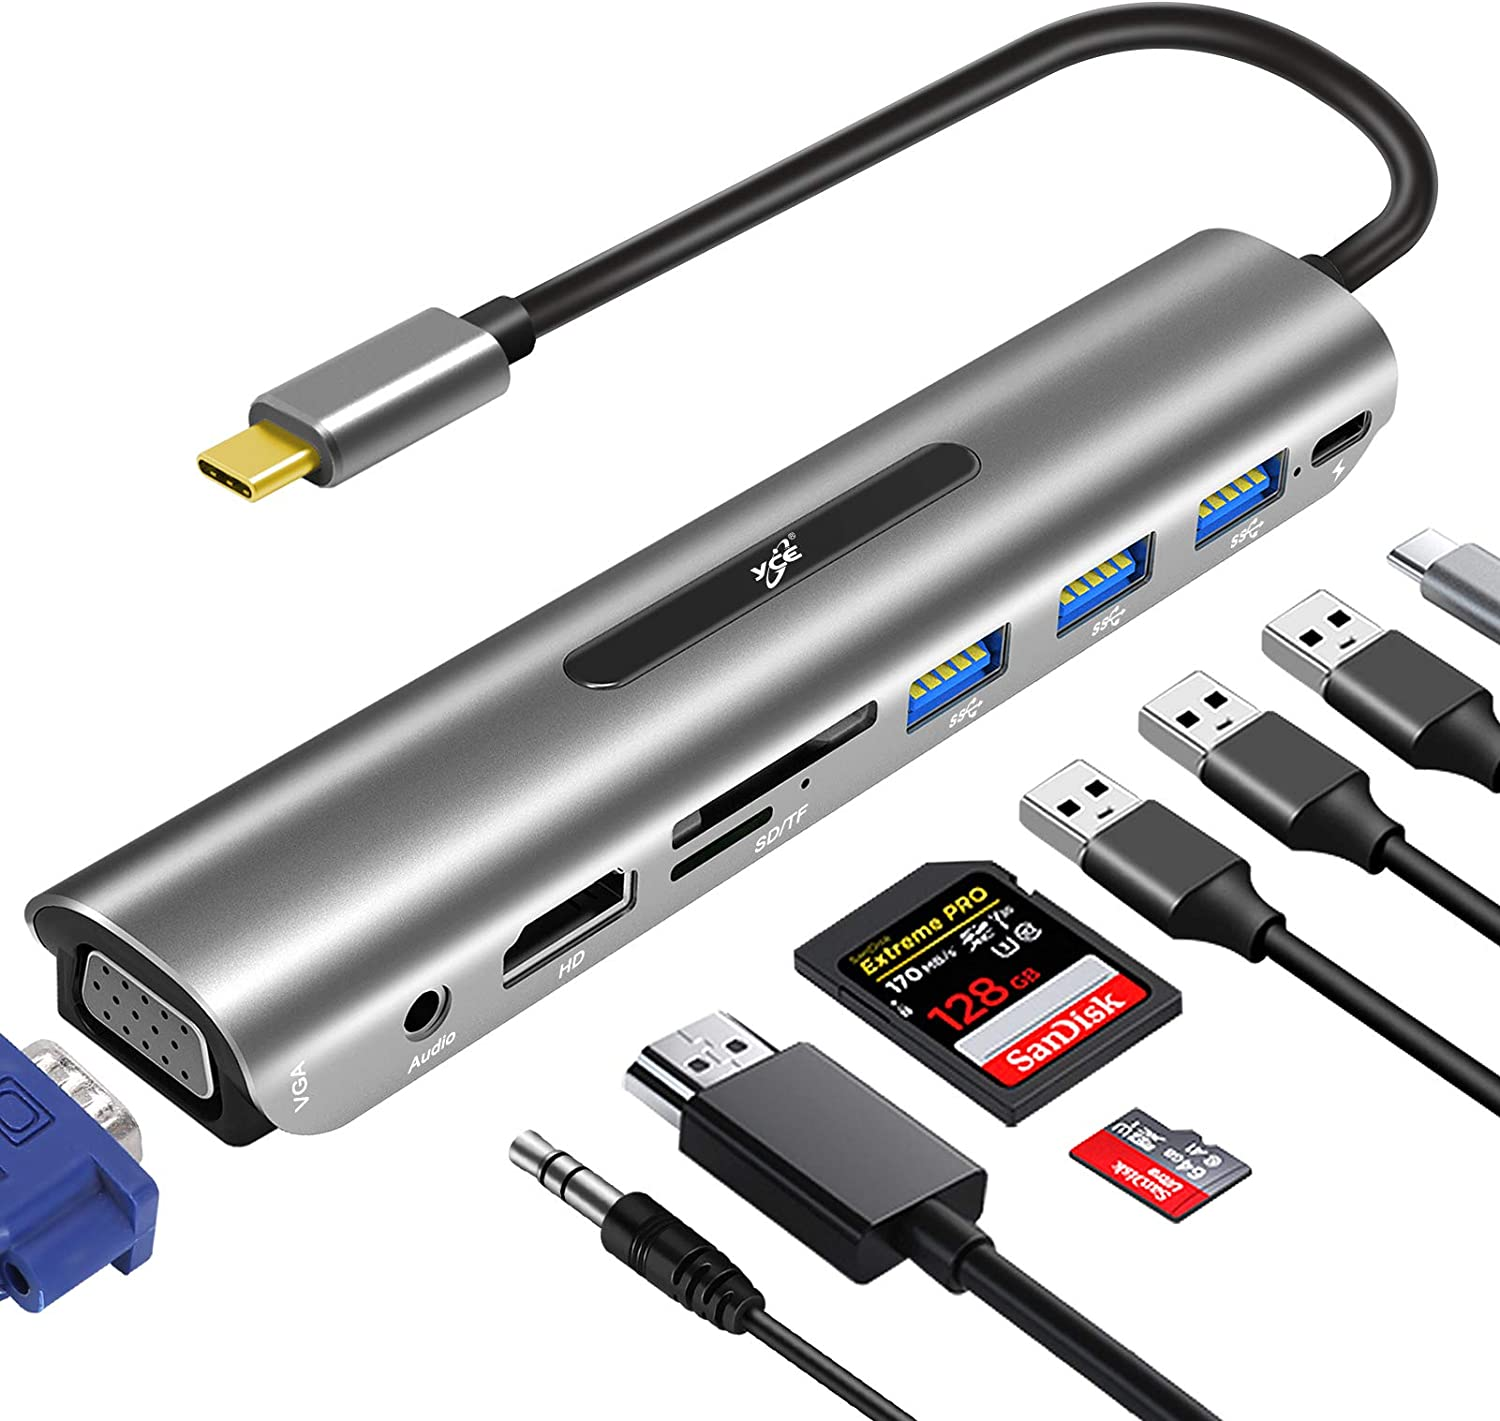 USB C Hub, USB C Dock,9 in1 USB C Docking Station Adapter with 4K HDMI, VGA, 100W PD, 4 USB Ports, SD TF Card Reader Multiport HDMI Dock for MacBook Pro/Air and USB-C Laptops